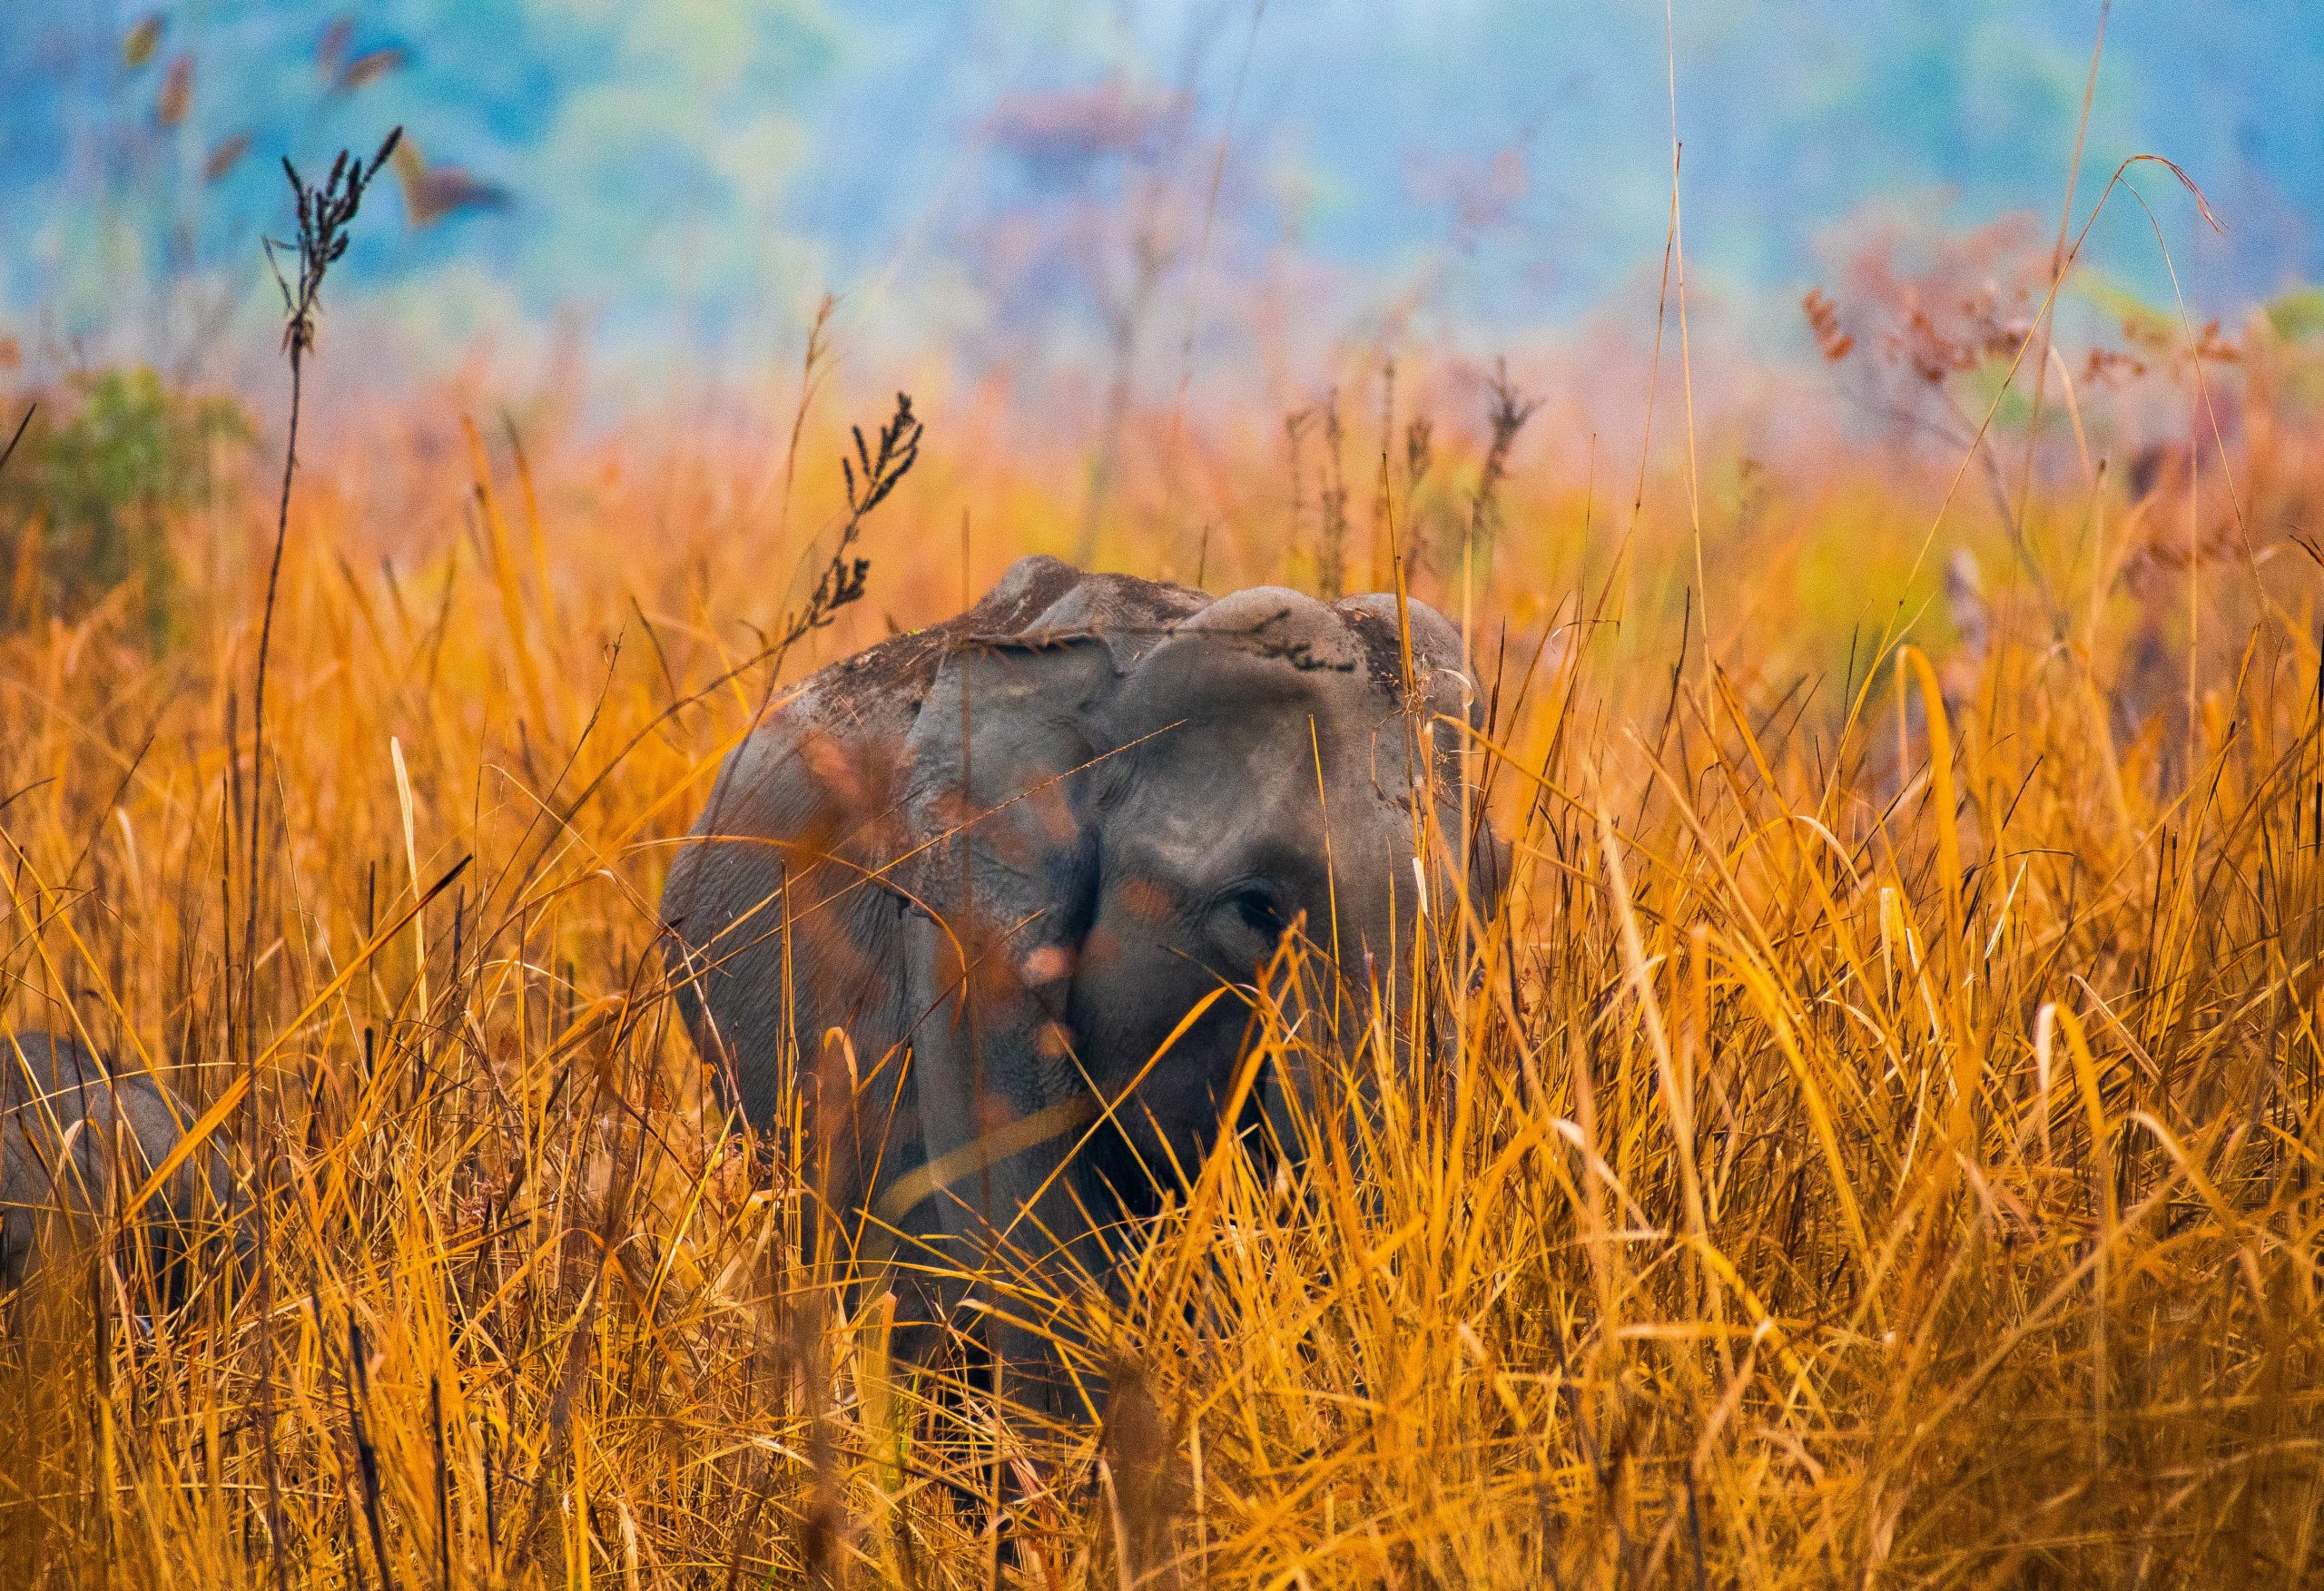 Elephant in the hay